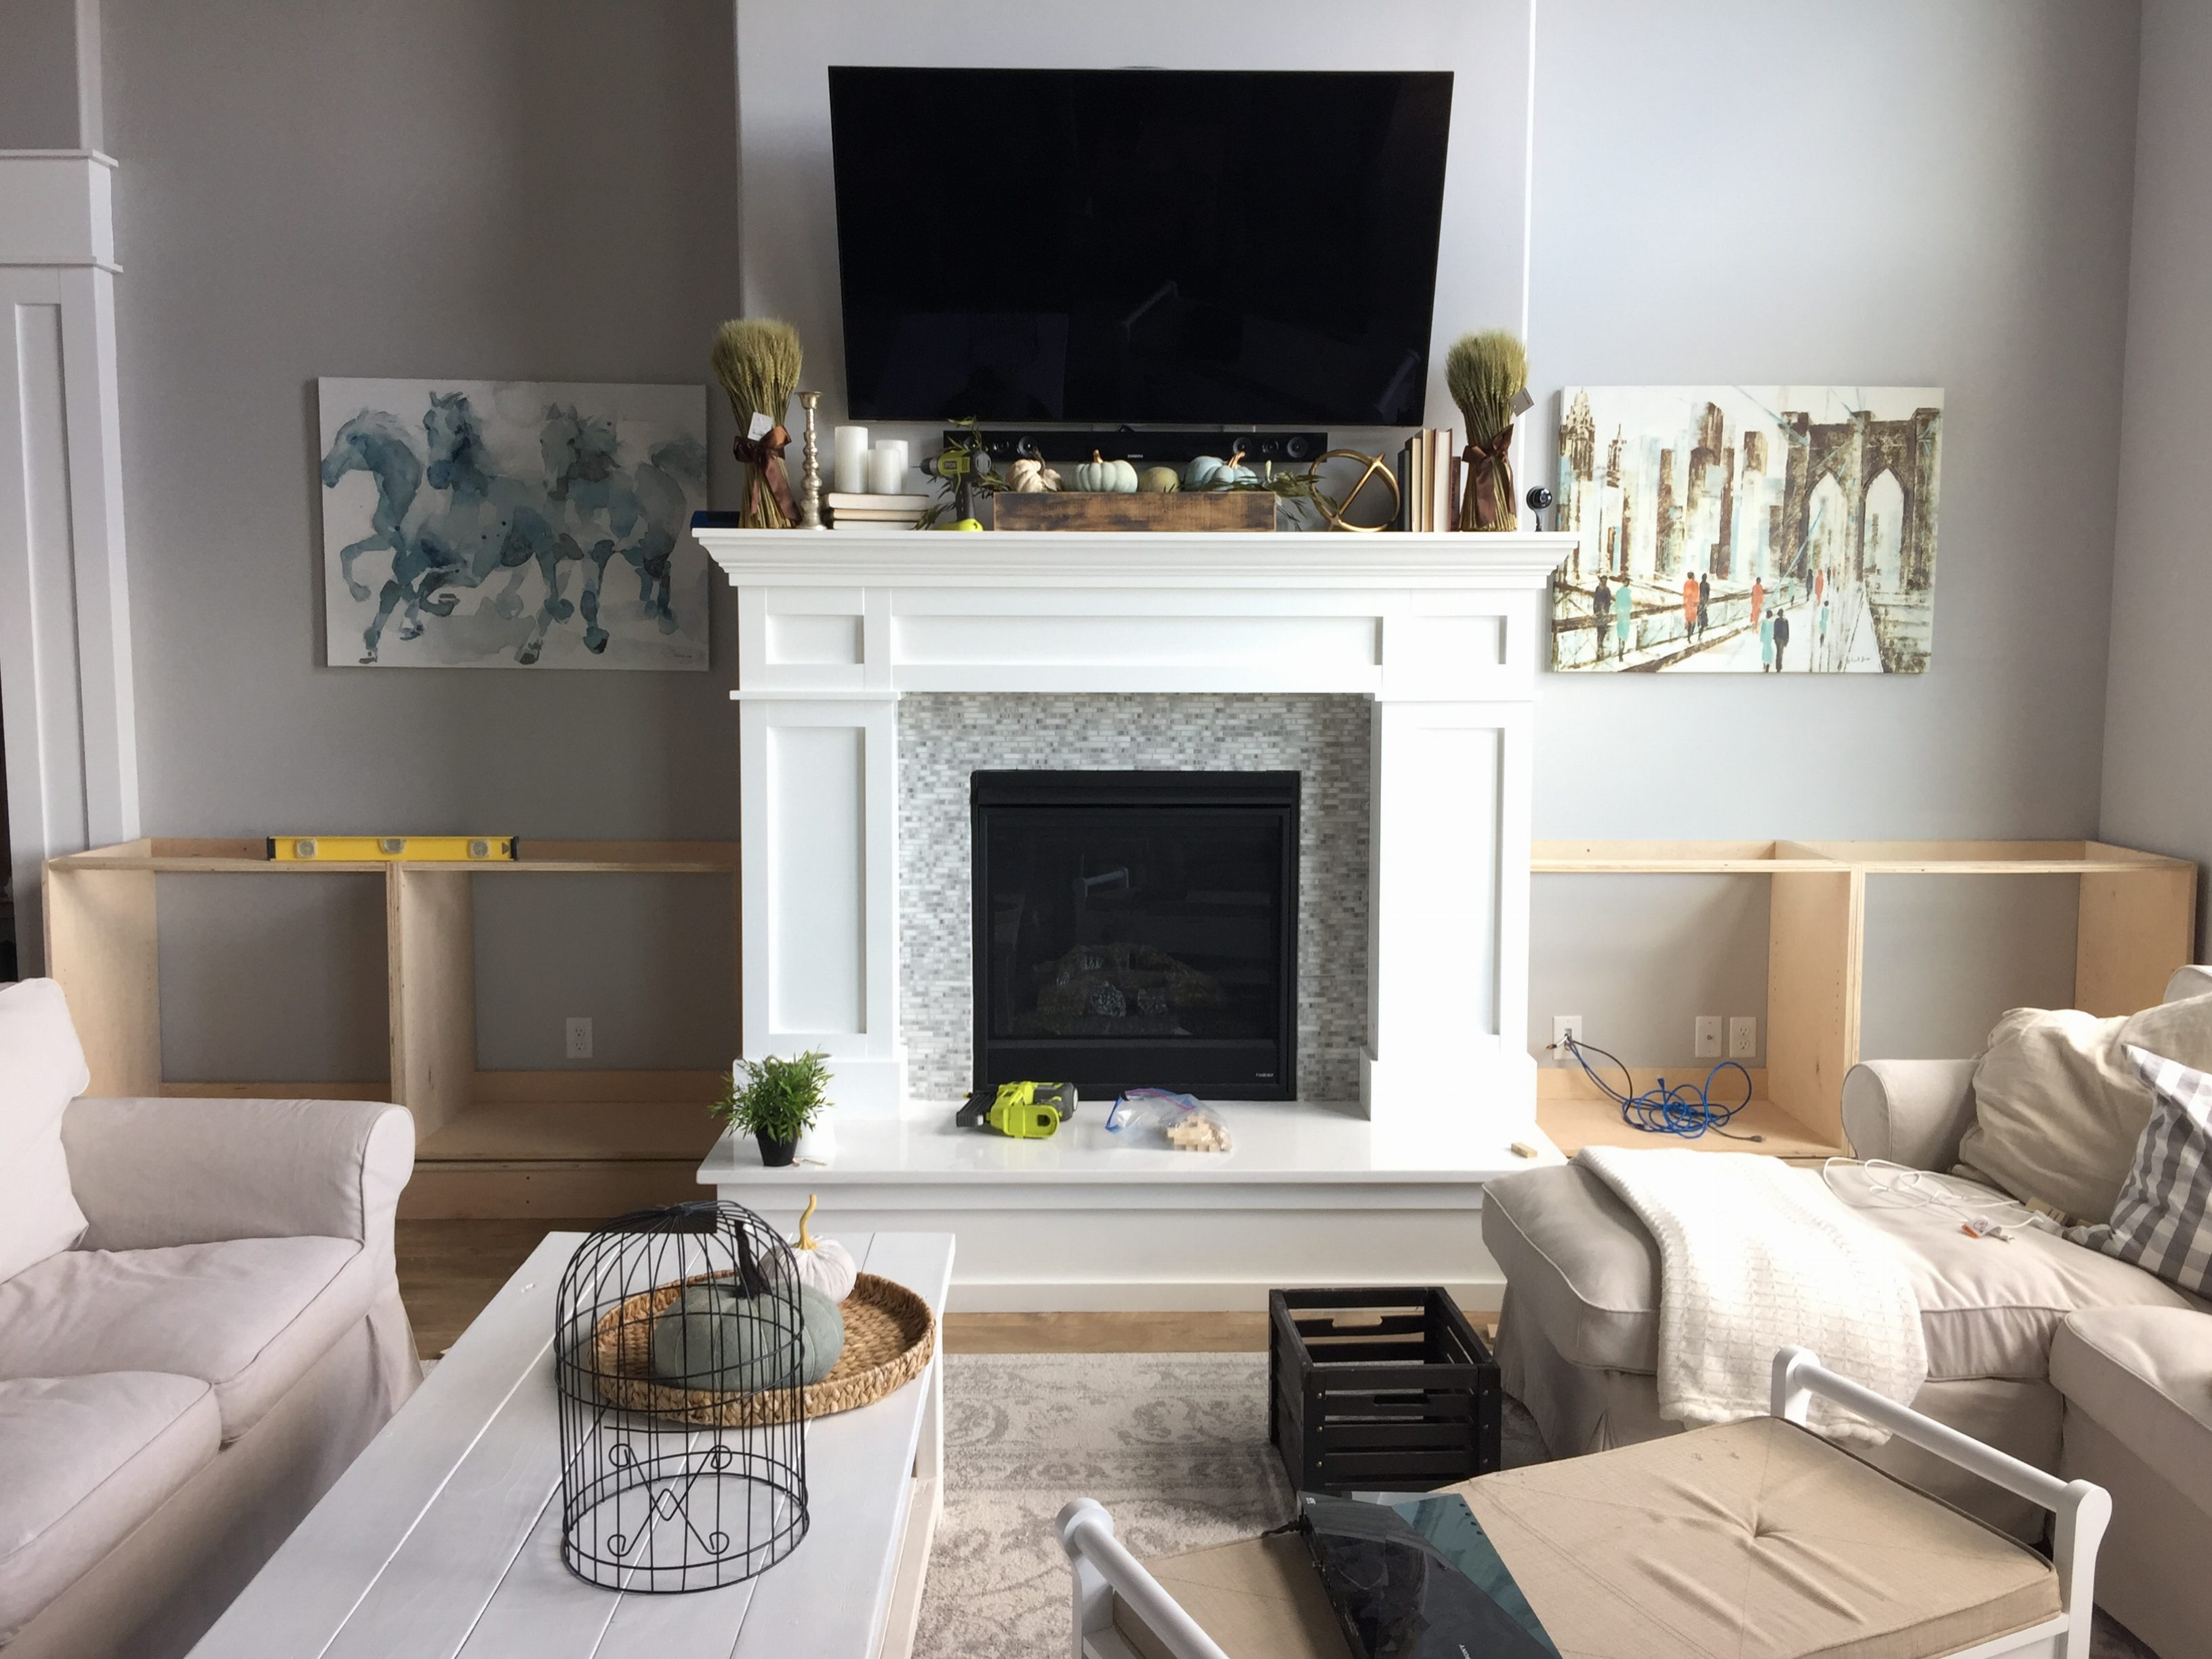 Diy Built In Cabinets Around The Fireplace Part 1